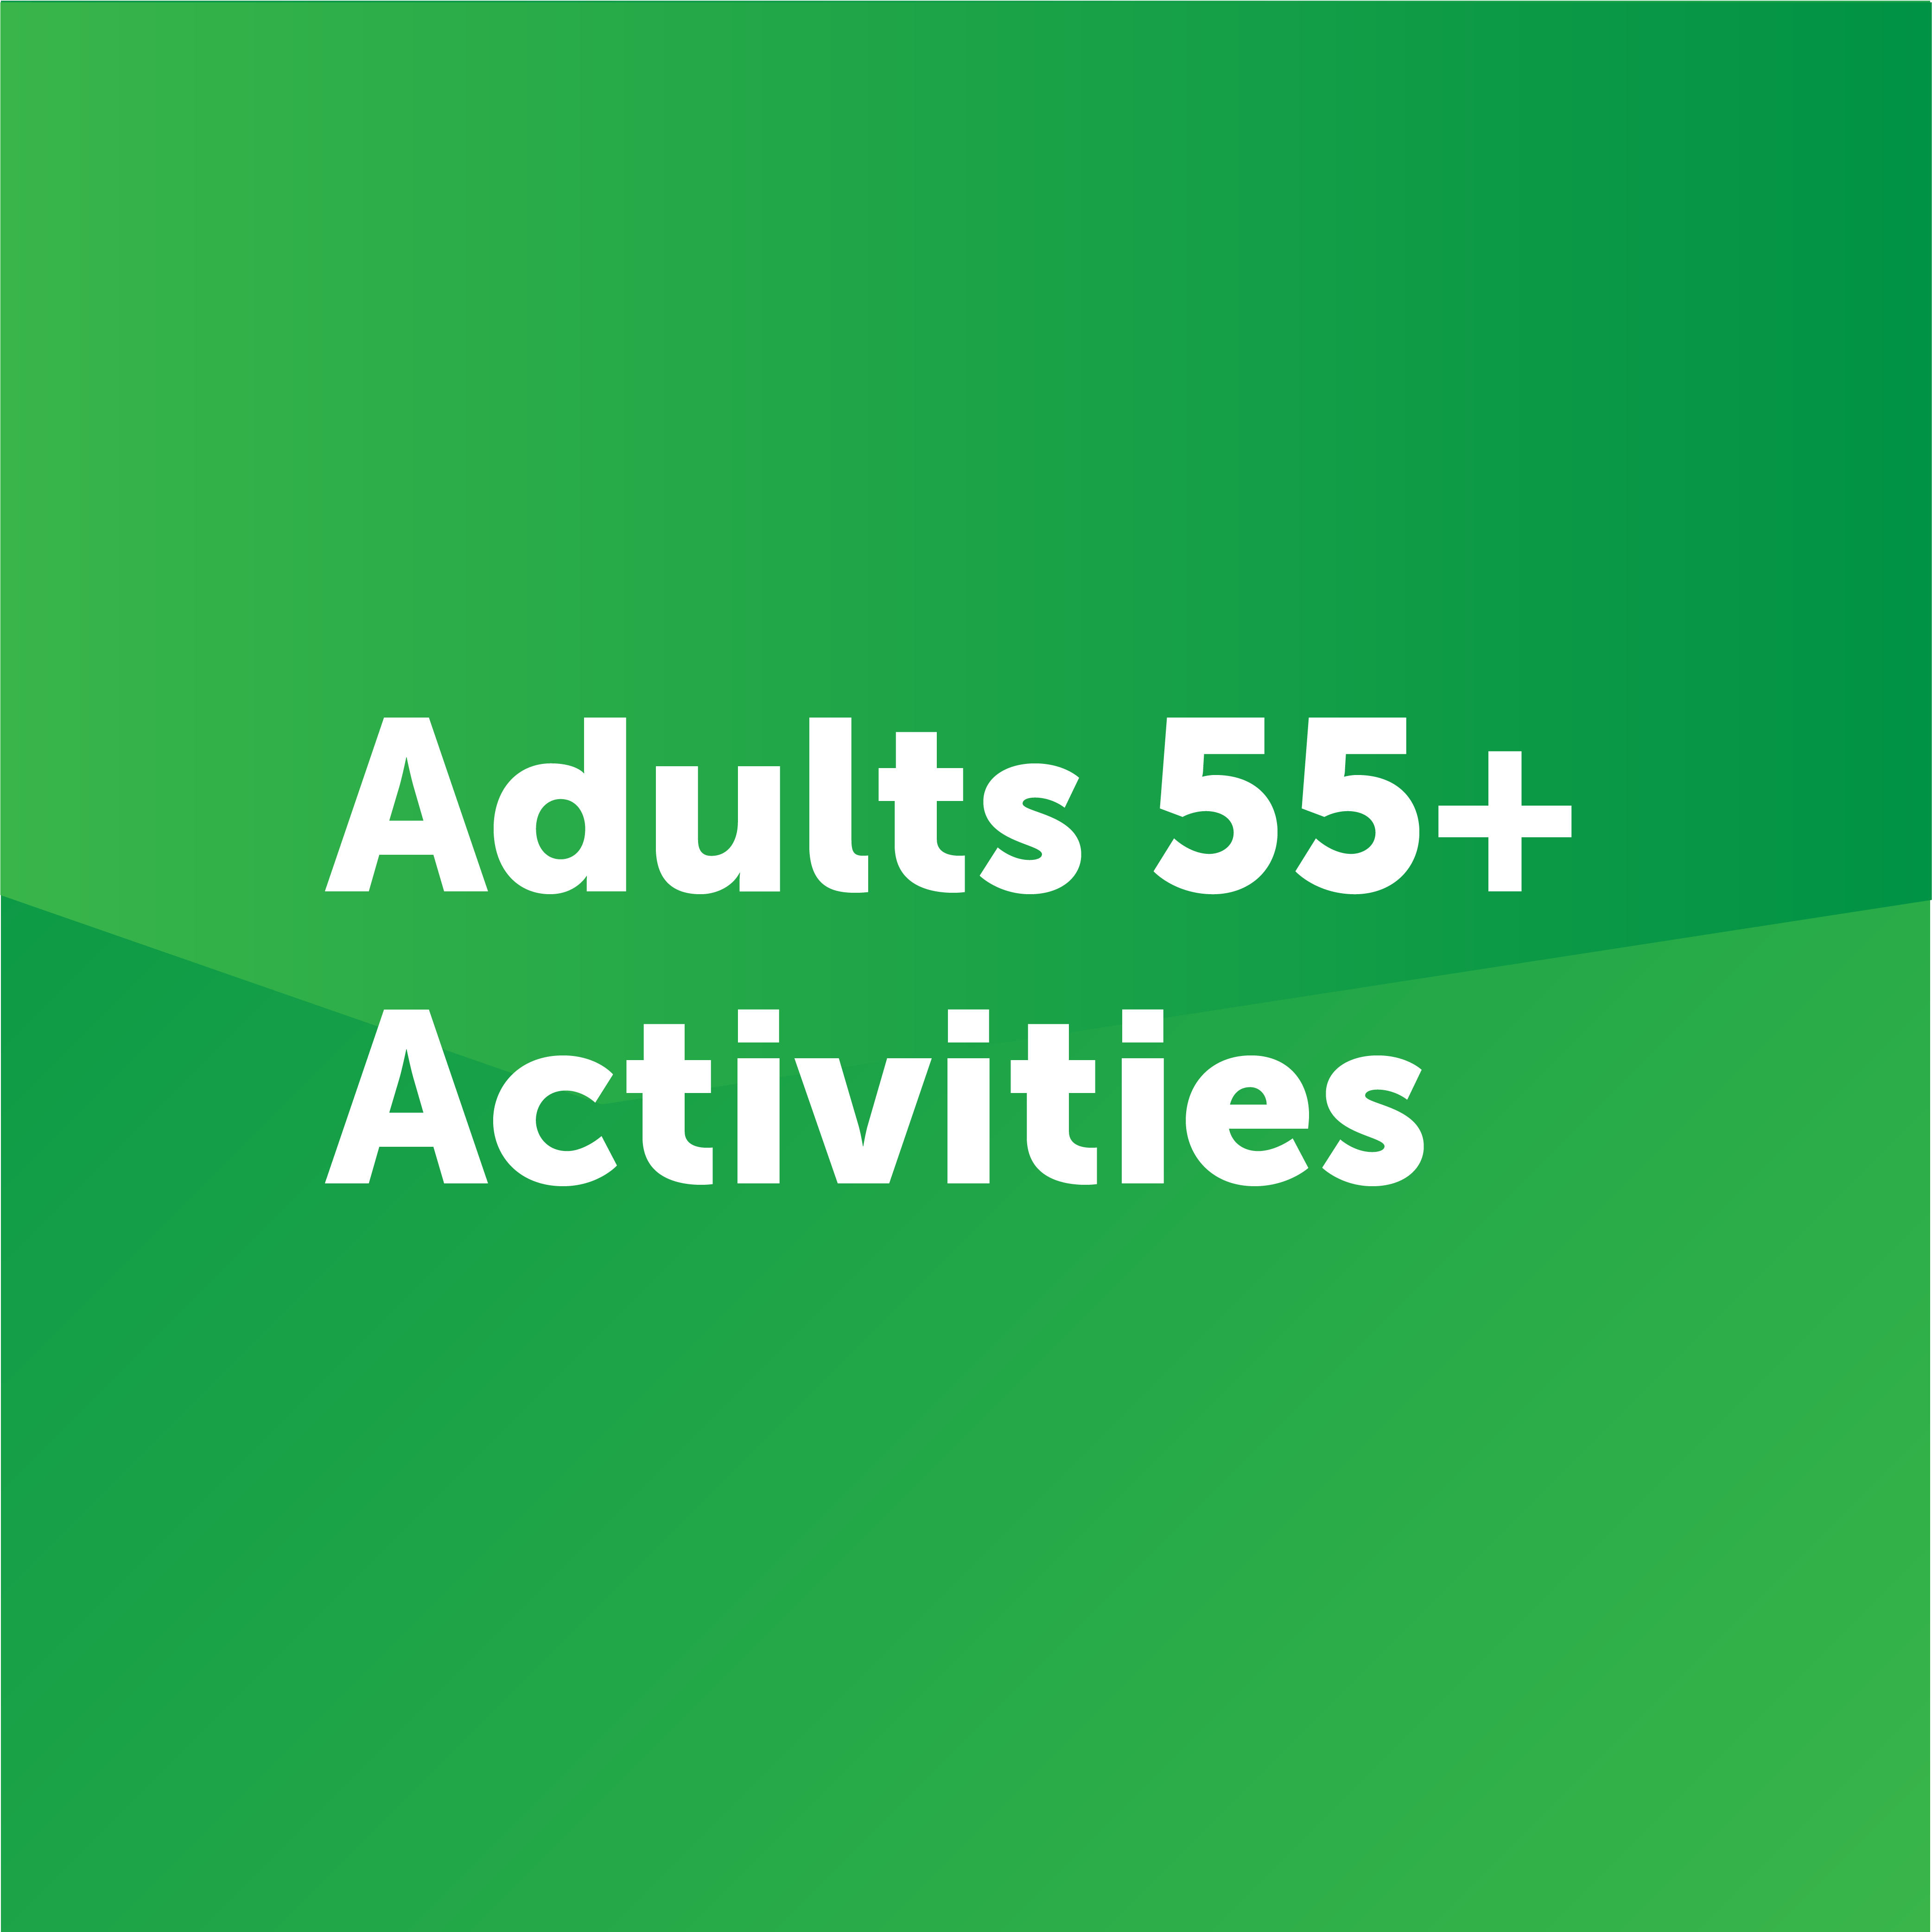 adults 55 plus activities button